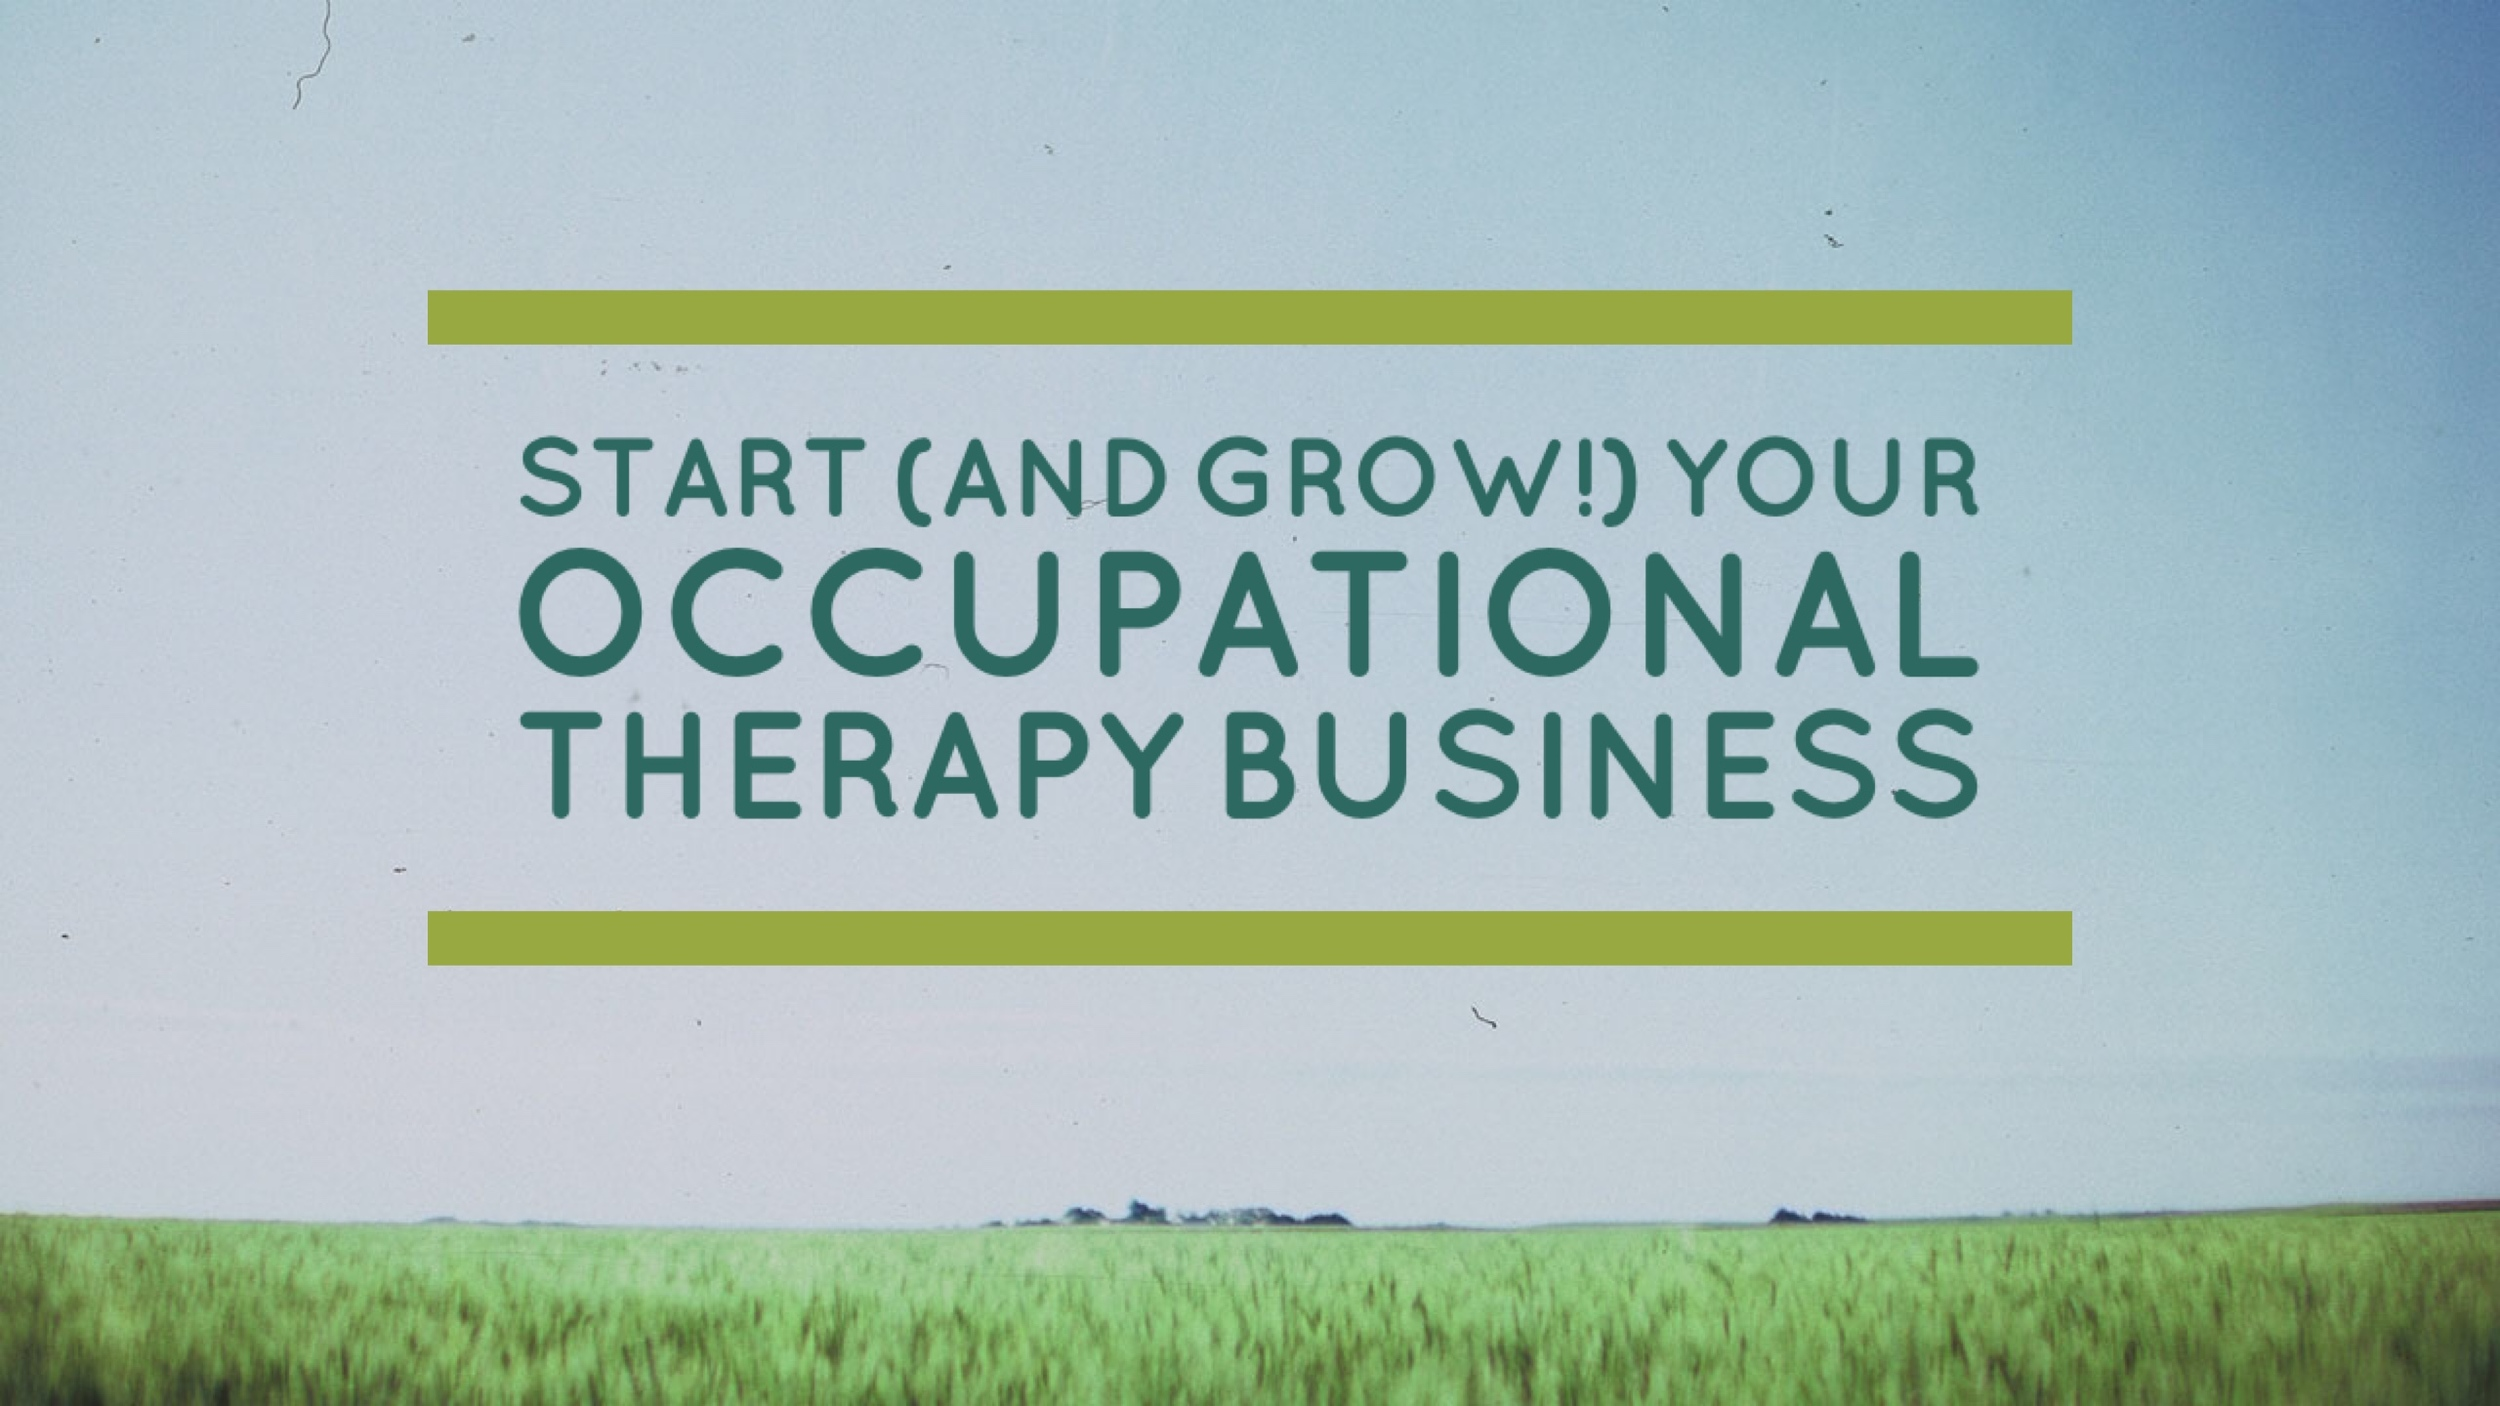 Resources to Start (and Grow) Your Occupational Therapy Business ...